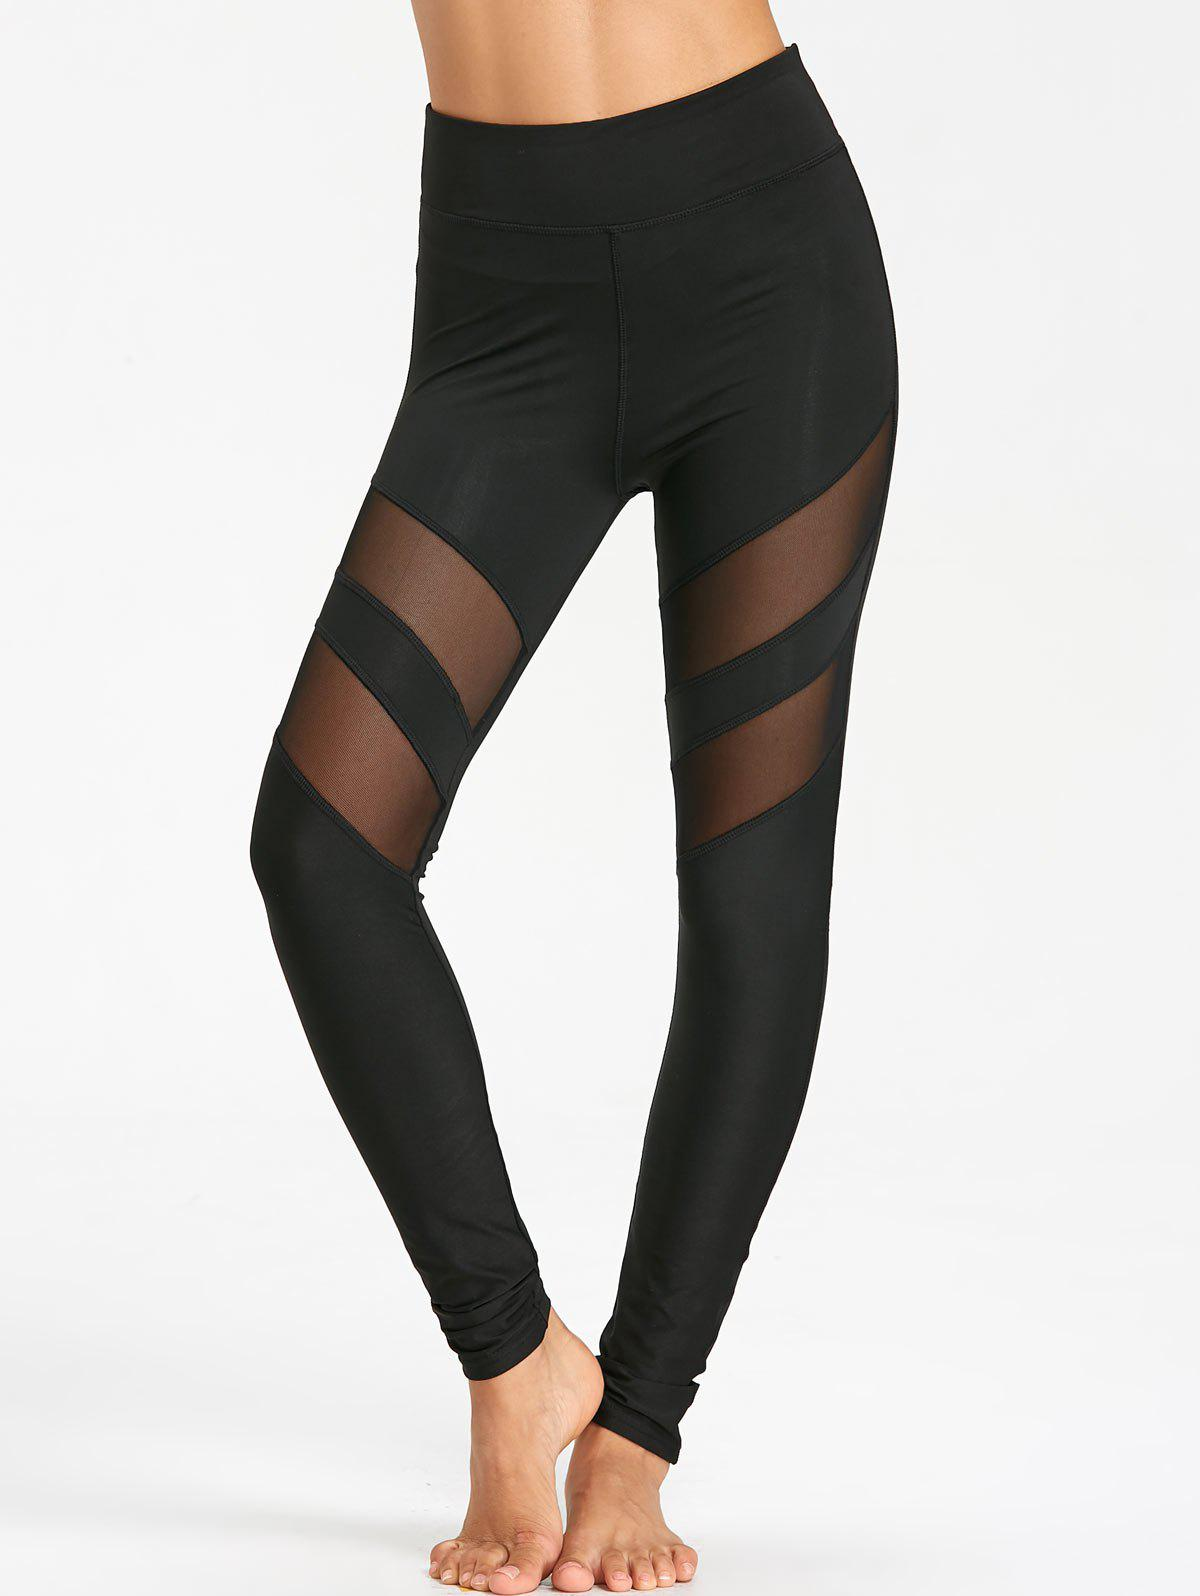 Chic High Waist Workout Leggings With Mesh Panel